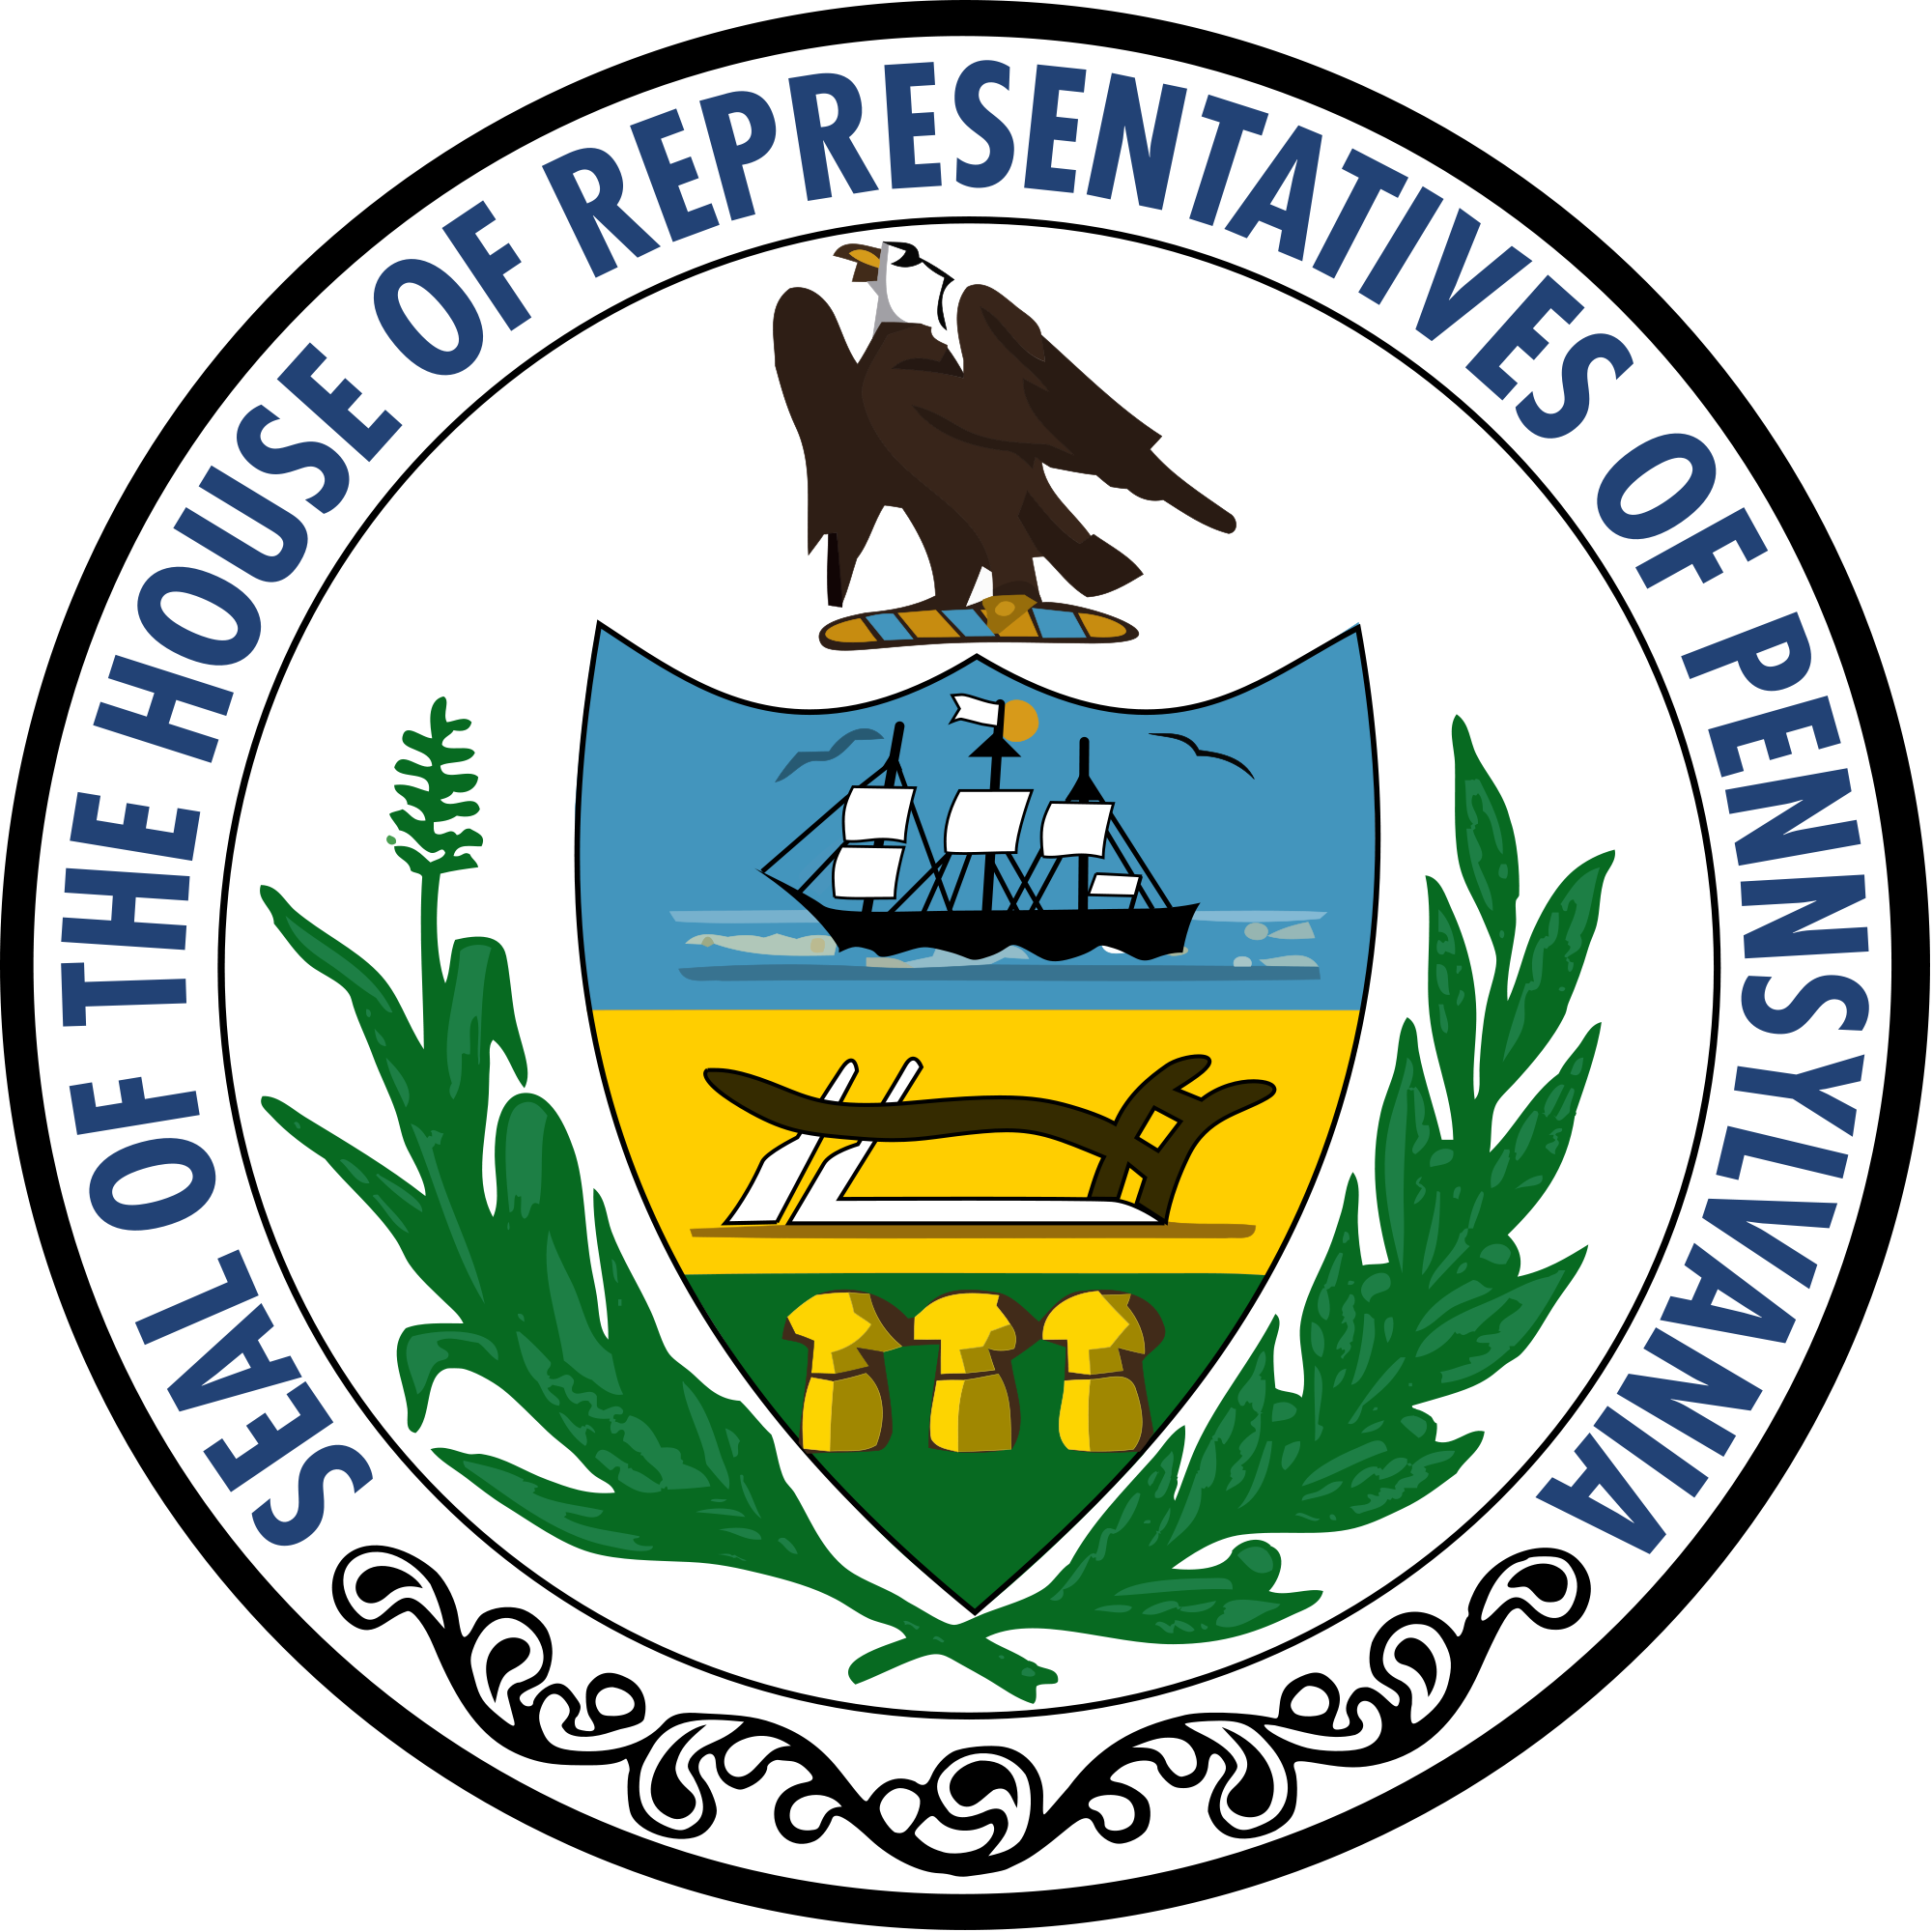 File:Seal of the Pennsylvania House of Representatives.svg ... clipart transparent library